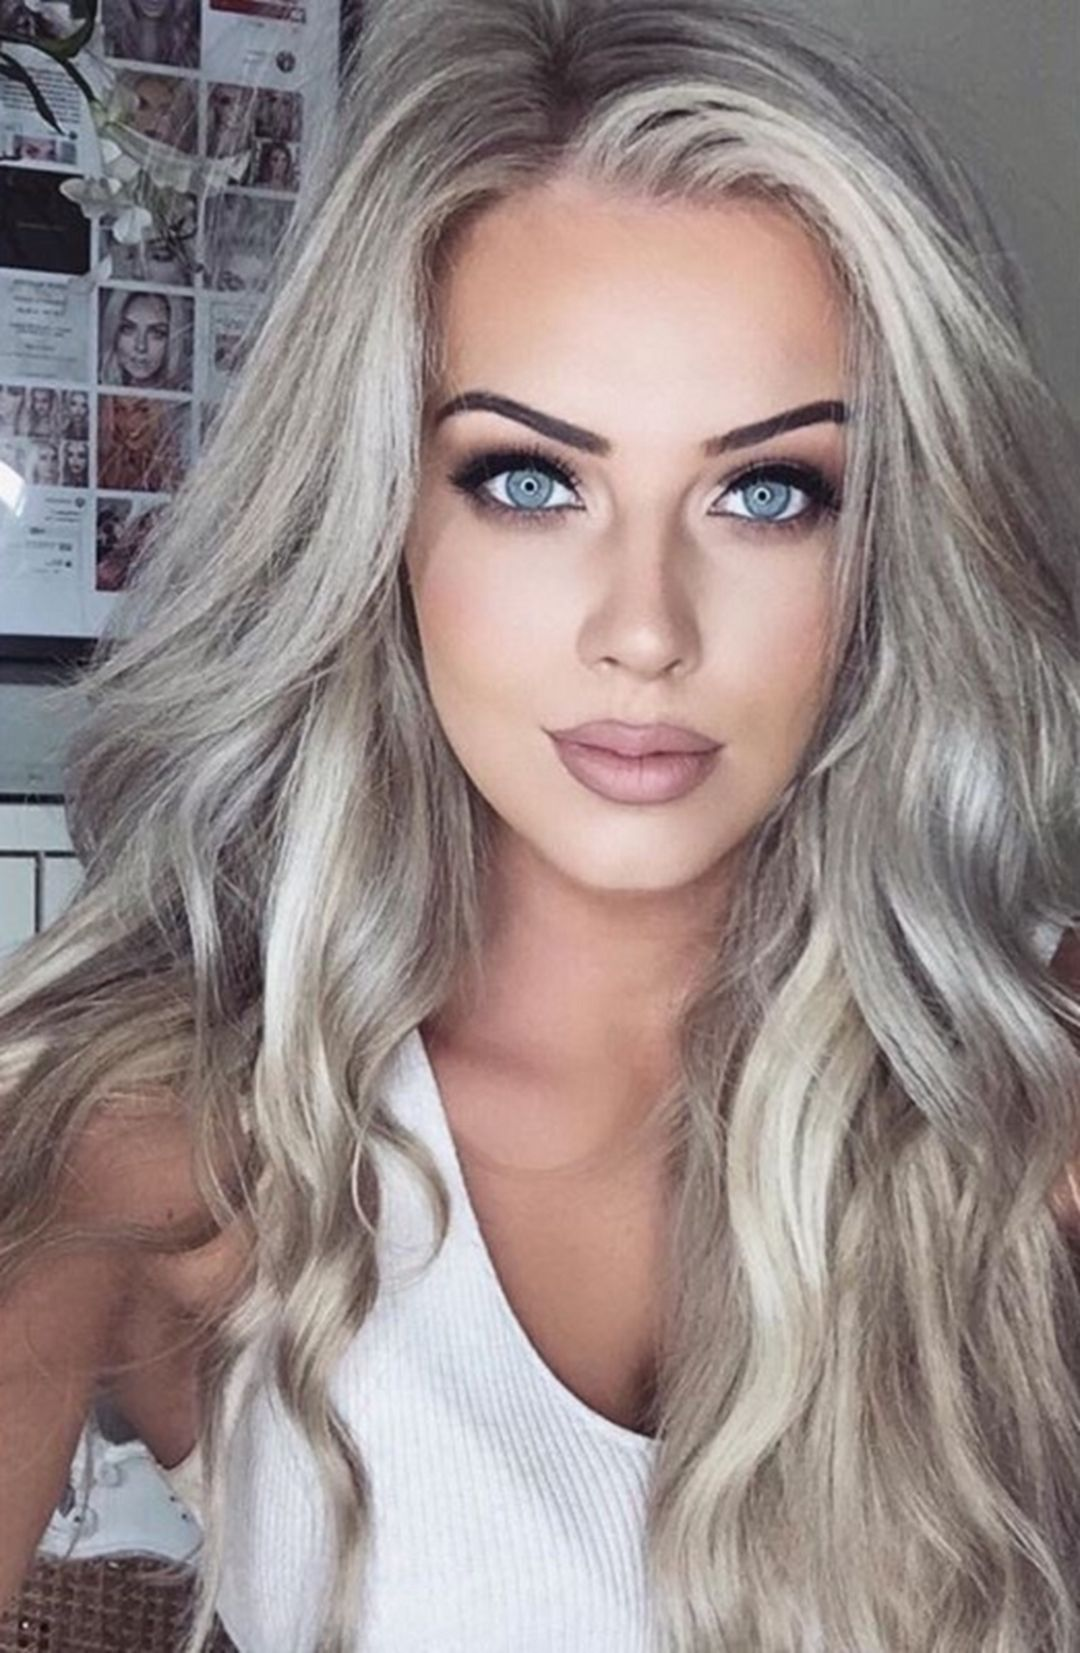 8 Most Beautiful Blonde Hair Colors To Try Out This Year Women S Hair Paradise In 2020 Hair Color For Women Blonde Hair Blue Eyes Hair Styles